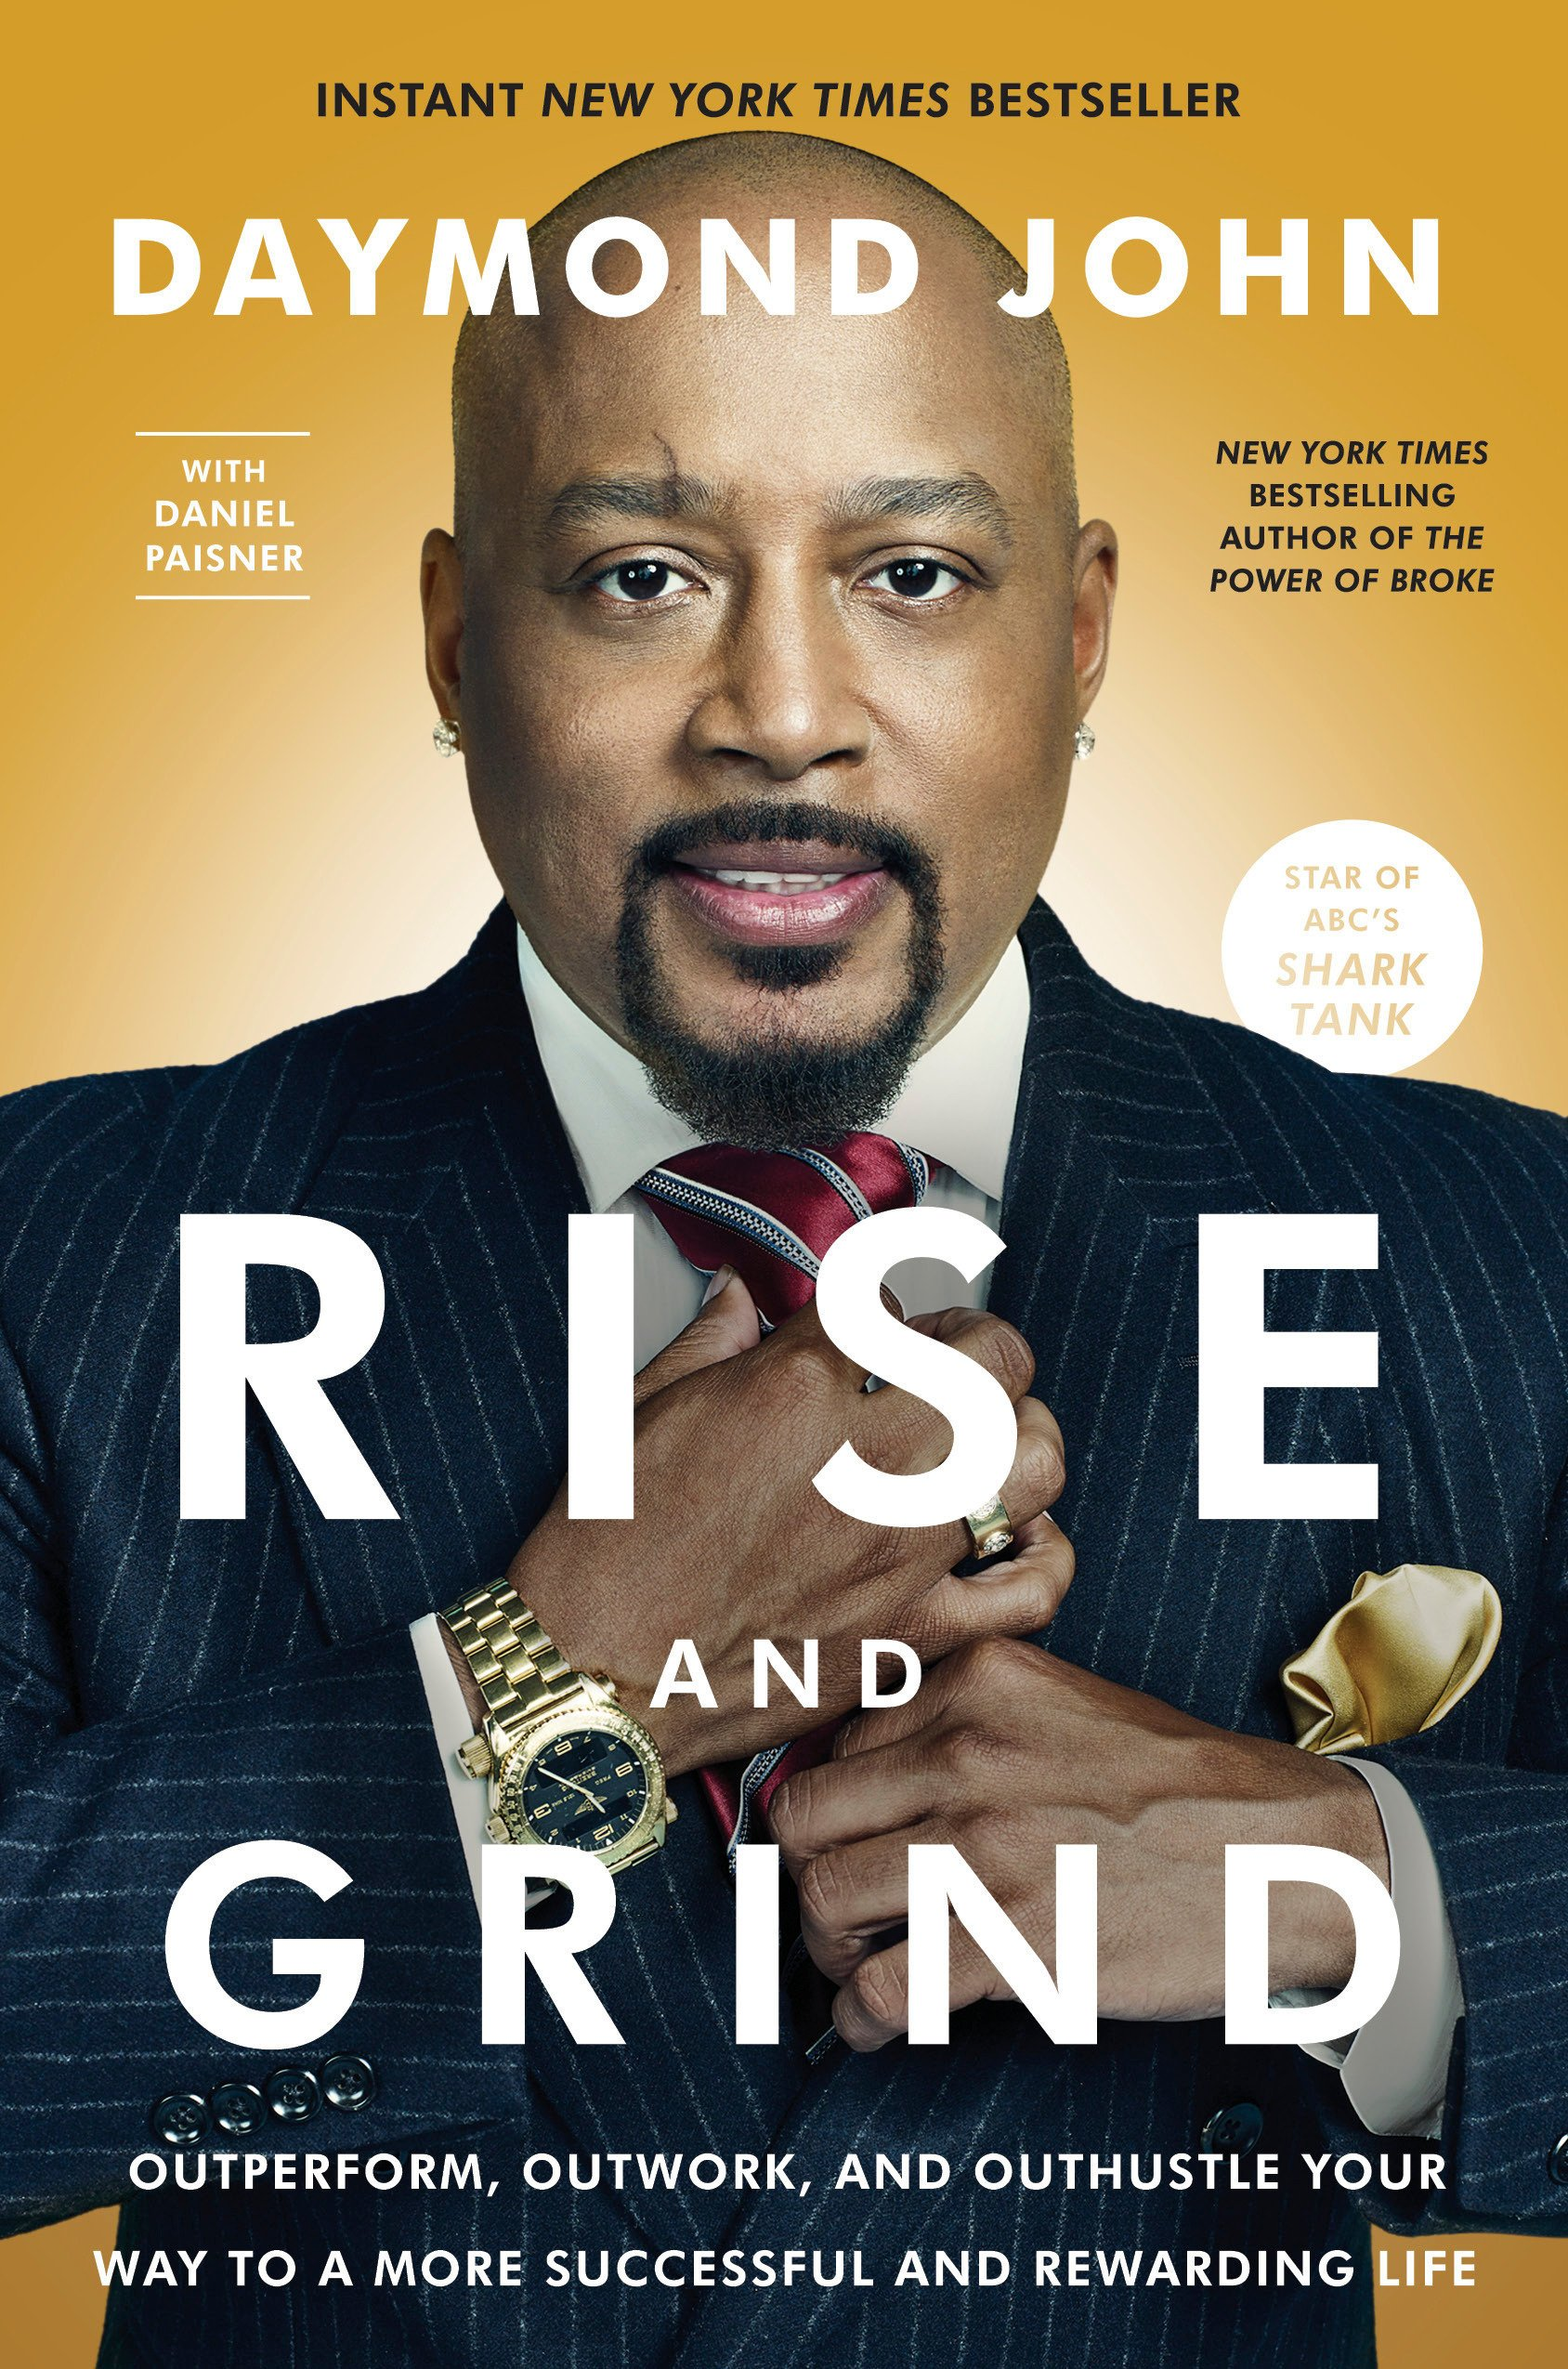 Rise and Grind: Outperform, Outwork, and Outhustle Your Way to a More  Successful and Rewarding Life: Amazon.co.uk: Daymond John: 9780804189958:  Books